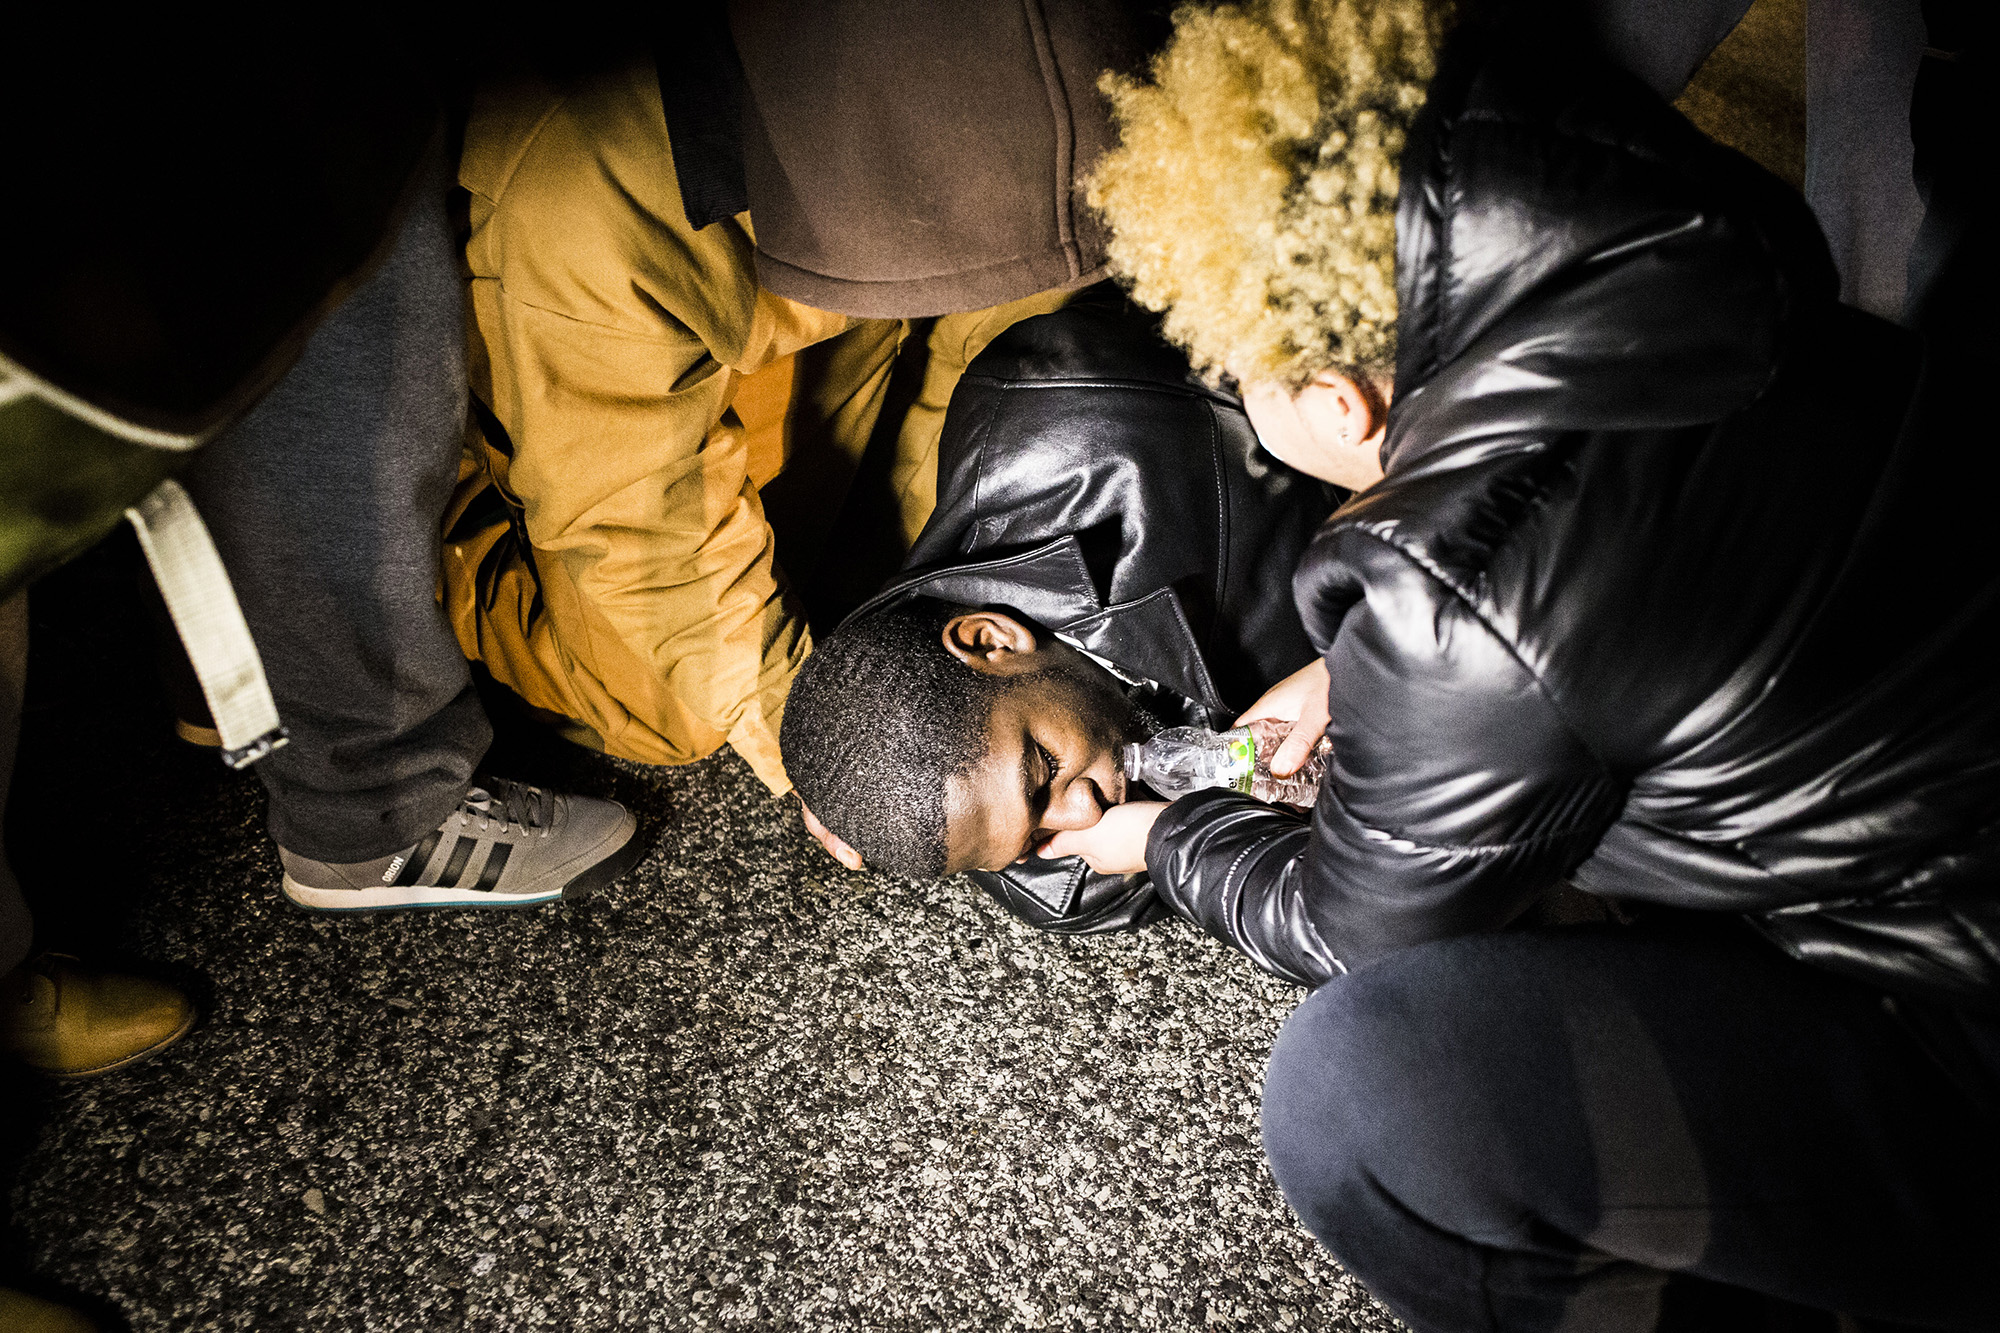 A protester lays on the street after police sprayed him with tear gas on Nov. 24, 2014, Ferguson, MO.